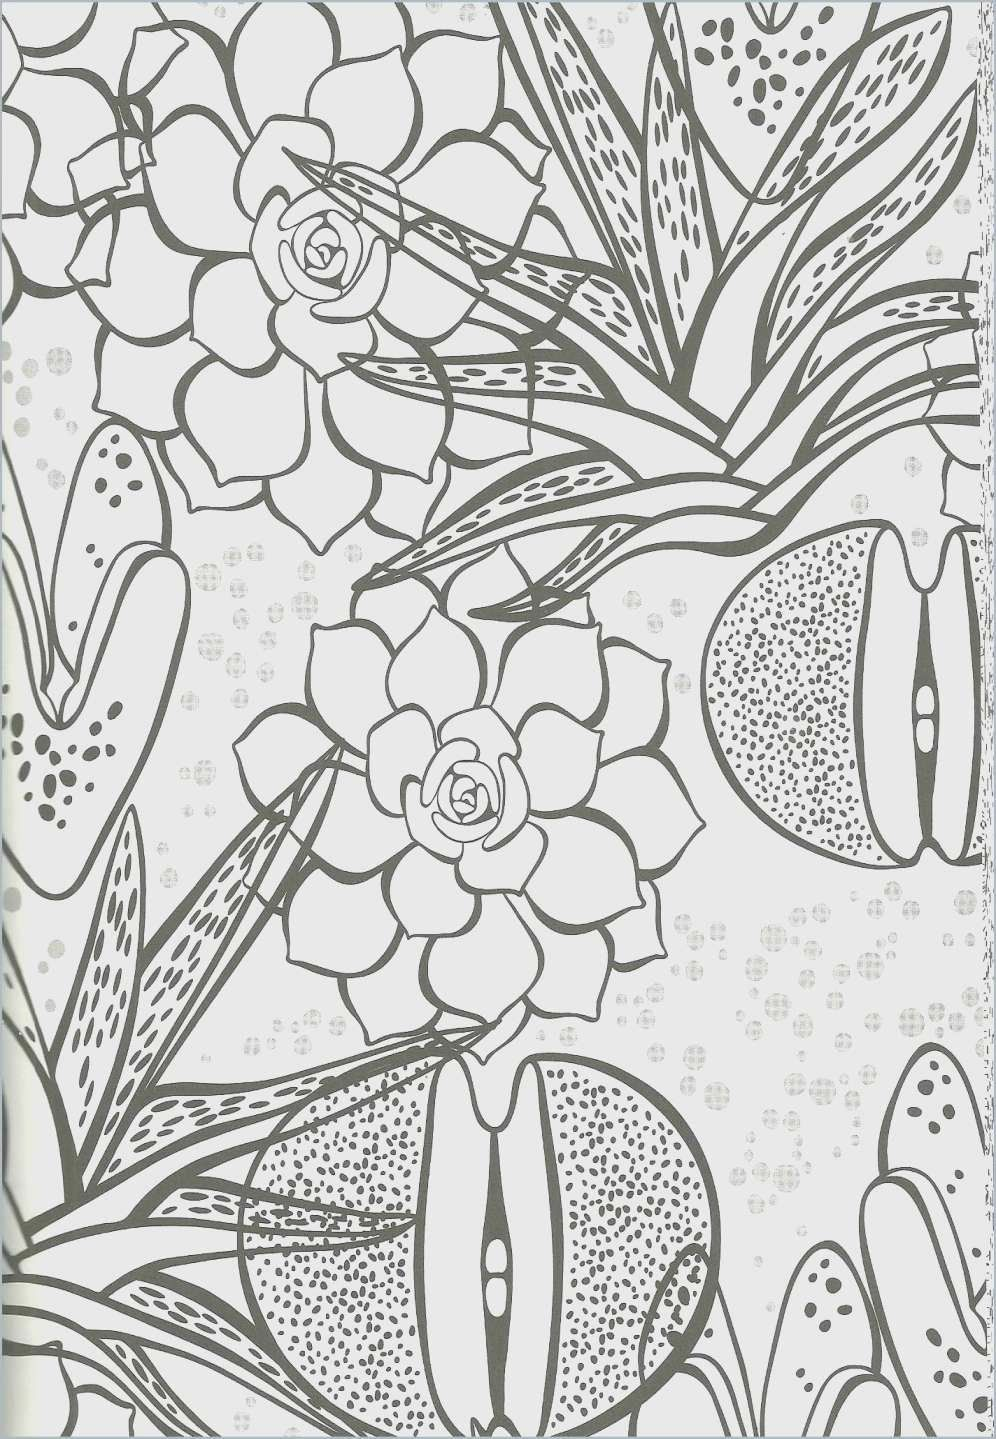 Coloring Color Of Flowers Lovely Flower Coloring Pages Printables Toiyeuemz Animal Coloring Pages Coloring Pages Inspirational Zebra Coloring Pages